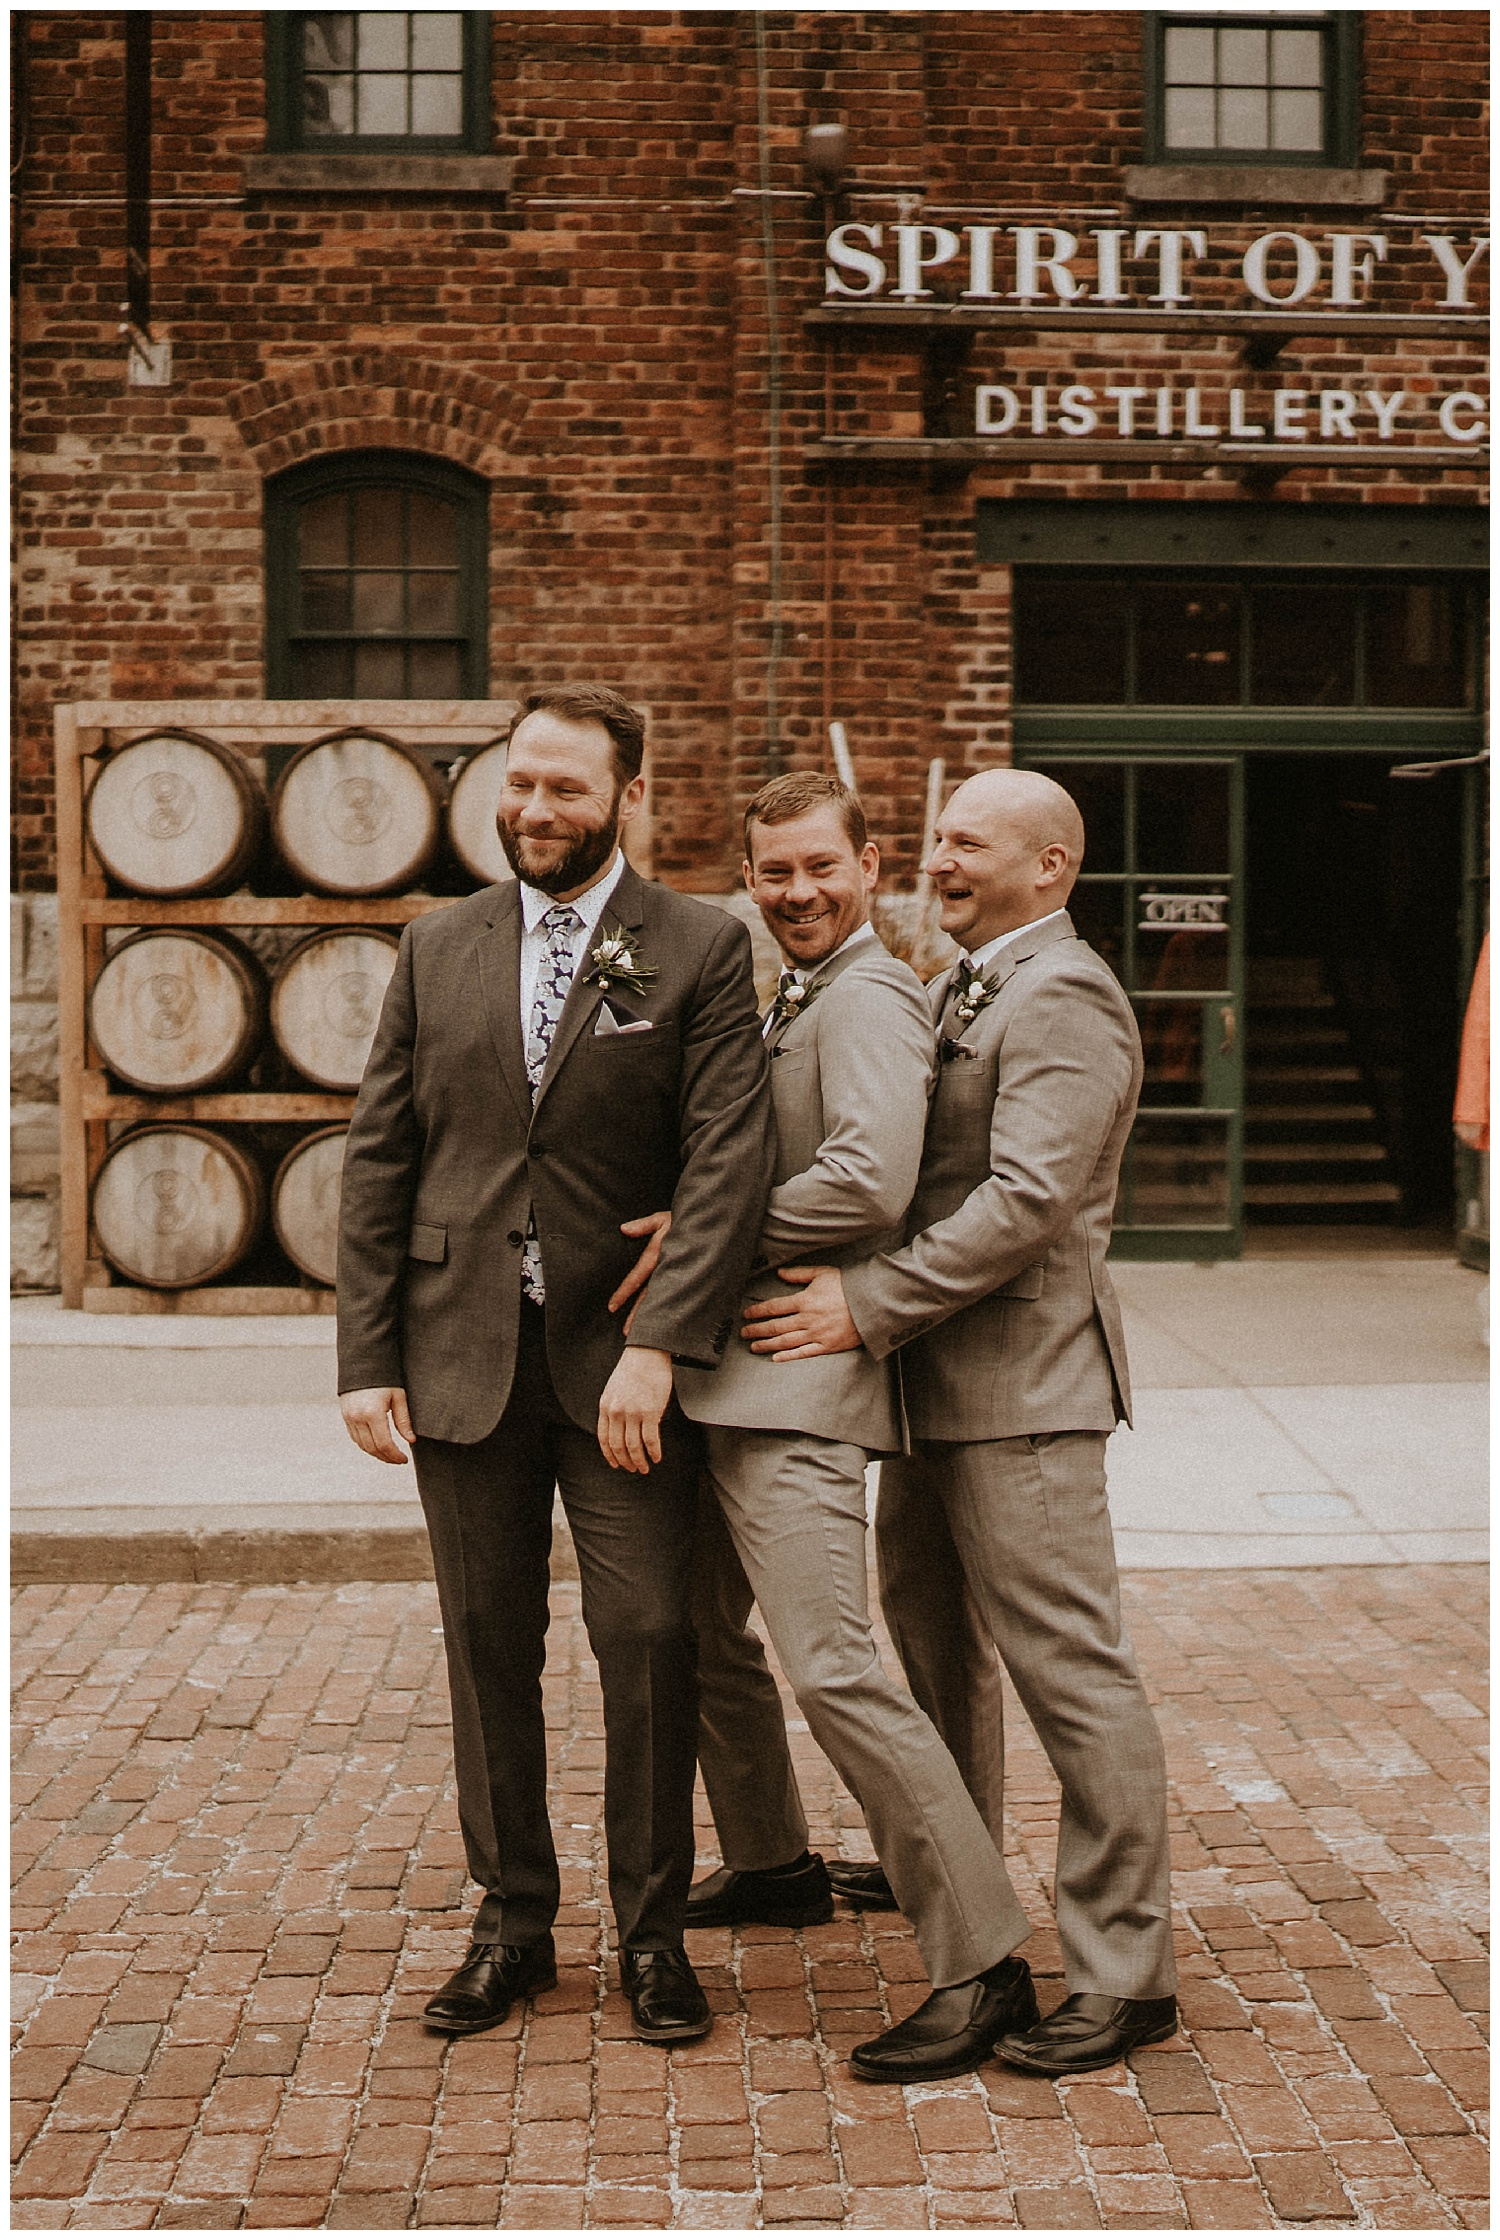 Katie Marie Photography | Archeo Wedding Arta Gallery Wedding | Distillery District Wedding | Toronto Wedding Photographer | Hamilton Toronto Ontario Wedding Photographer |_0063.jpg